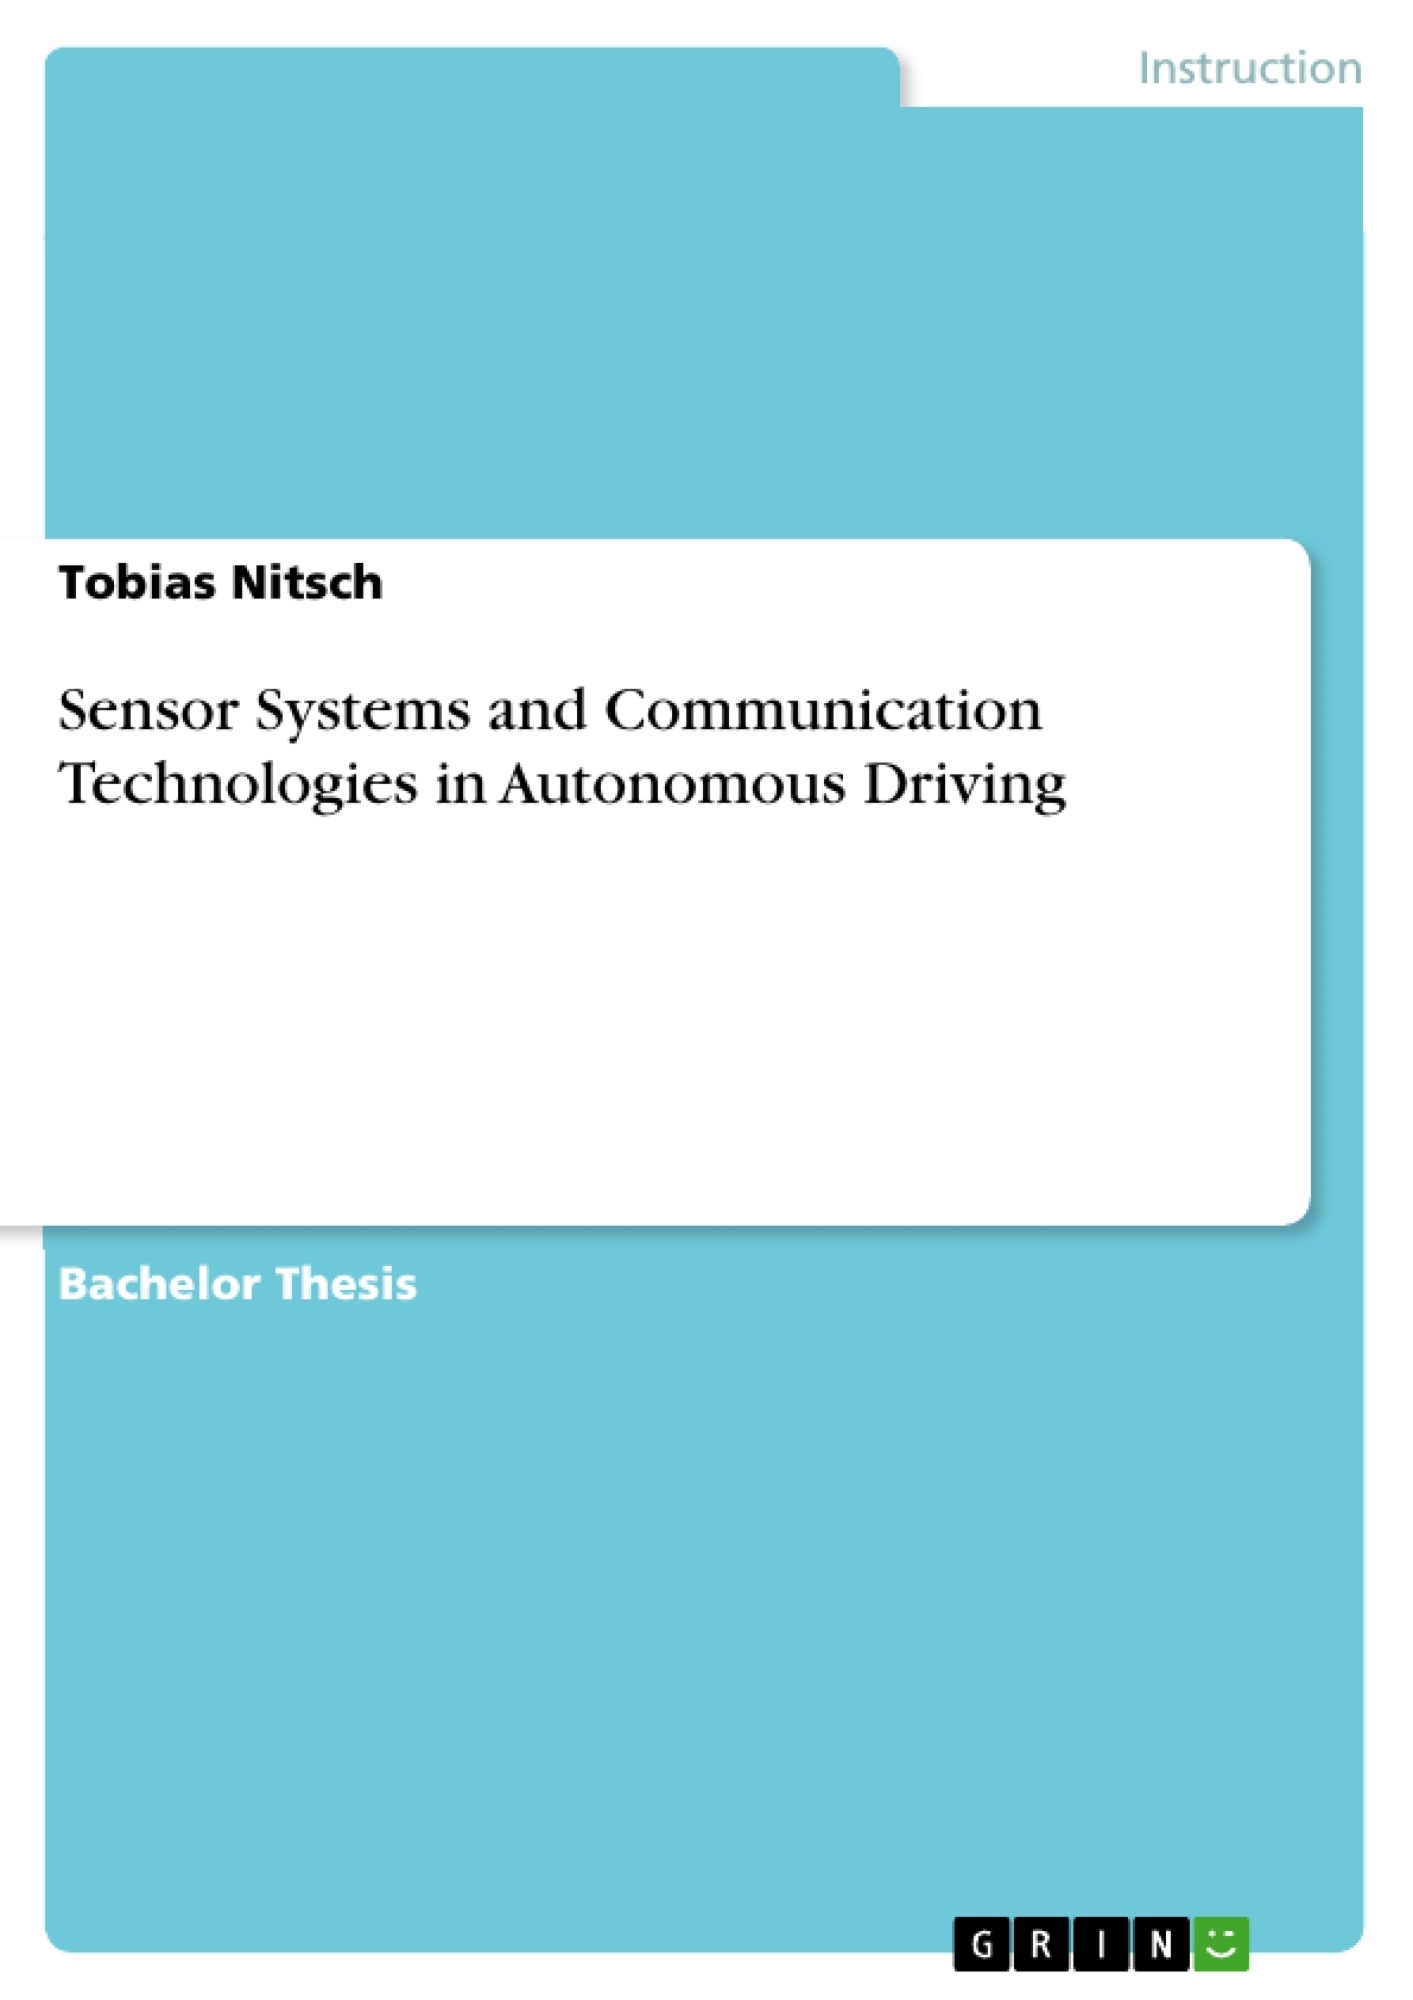 Title: Sensor Systems and Communication Technologies in Autonomous Driving